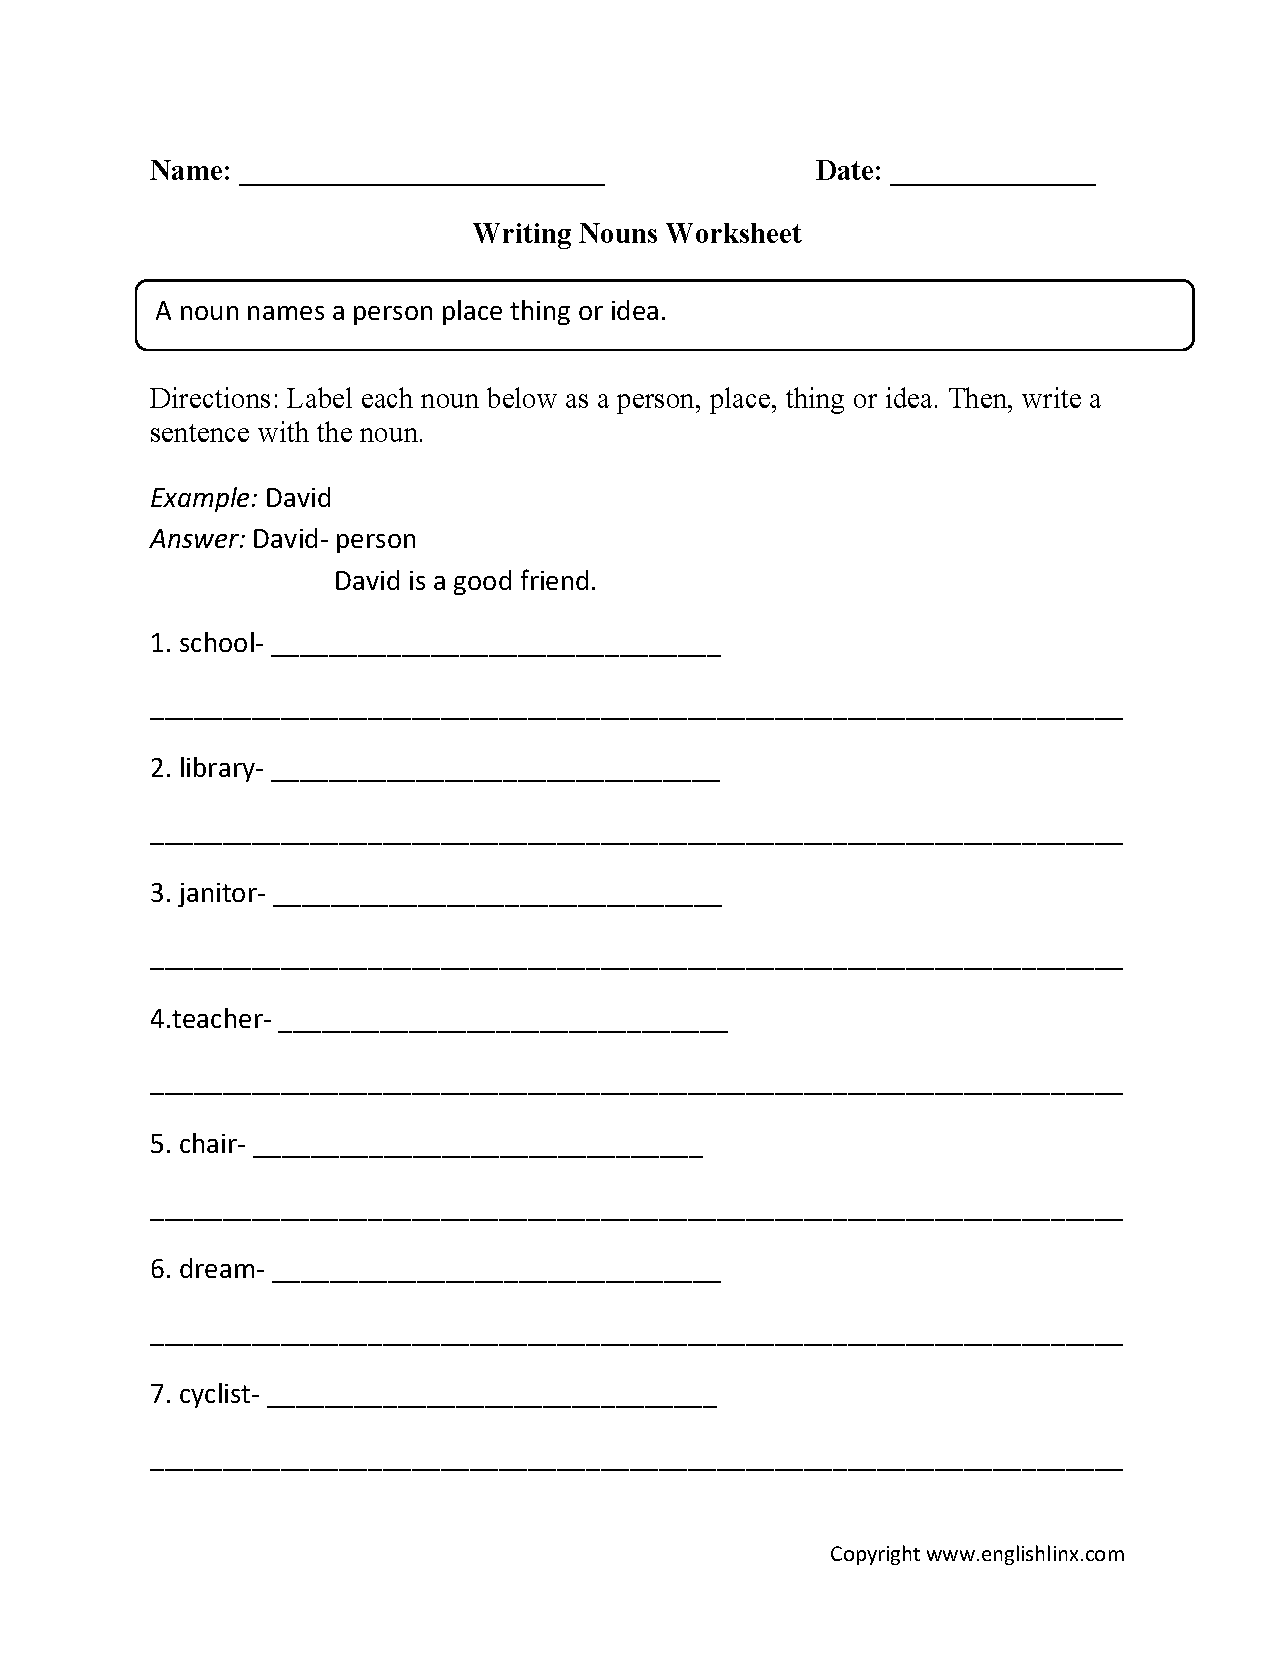 Writing Nouns Worksheet